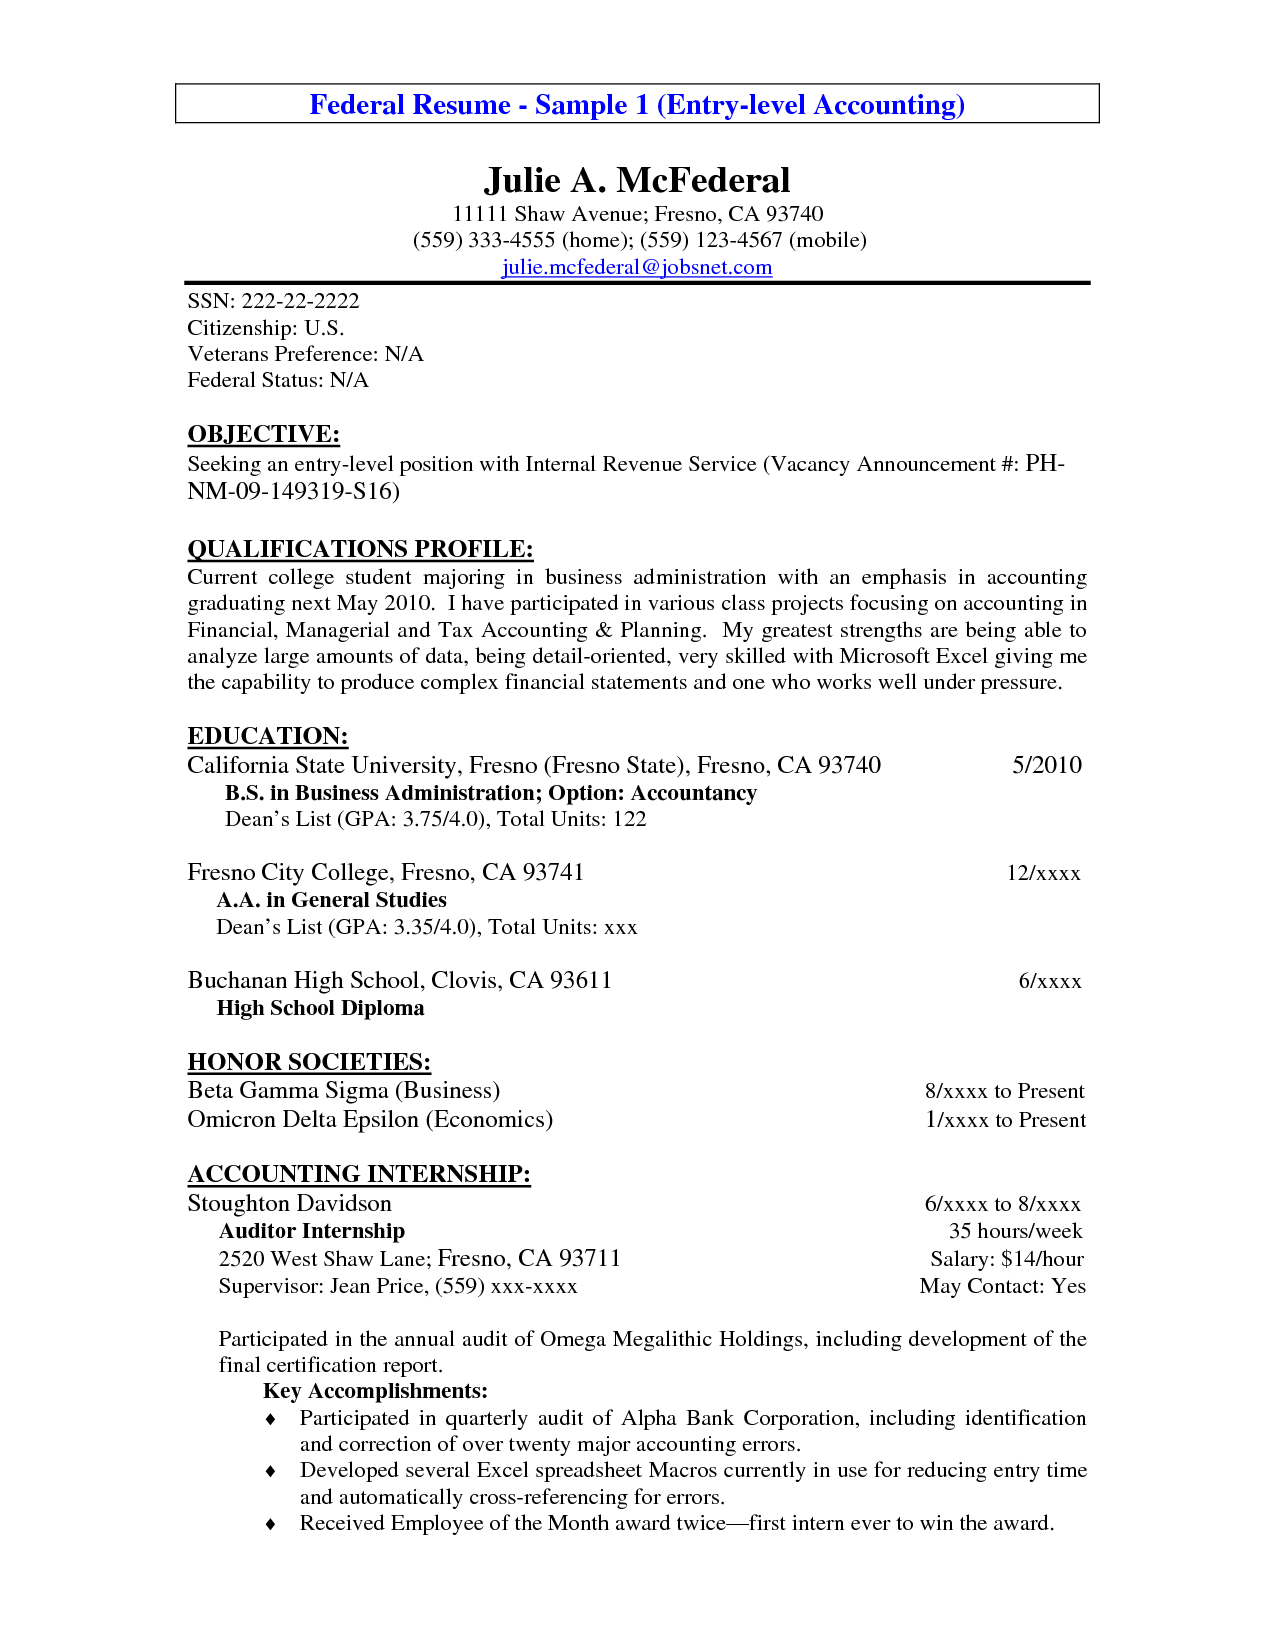 Objectives In Resume Accounting Resume Objectives Read More  Httpwww